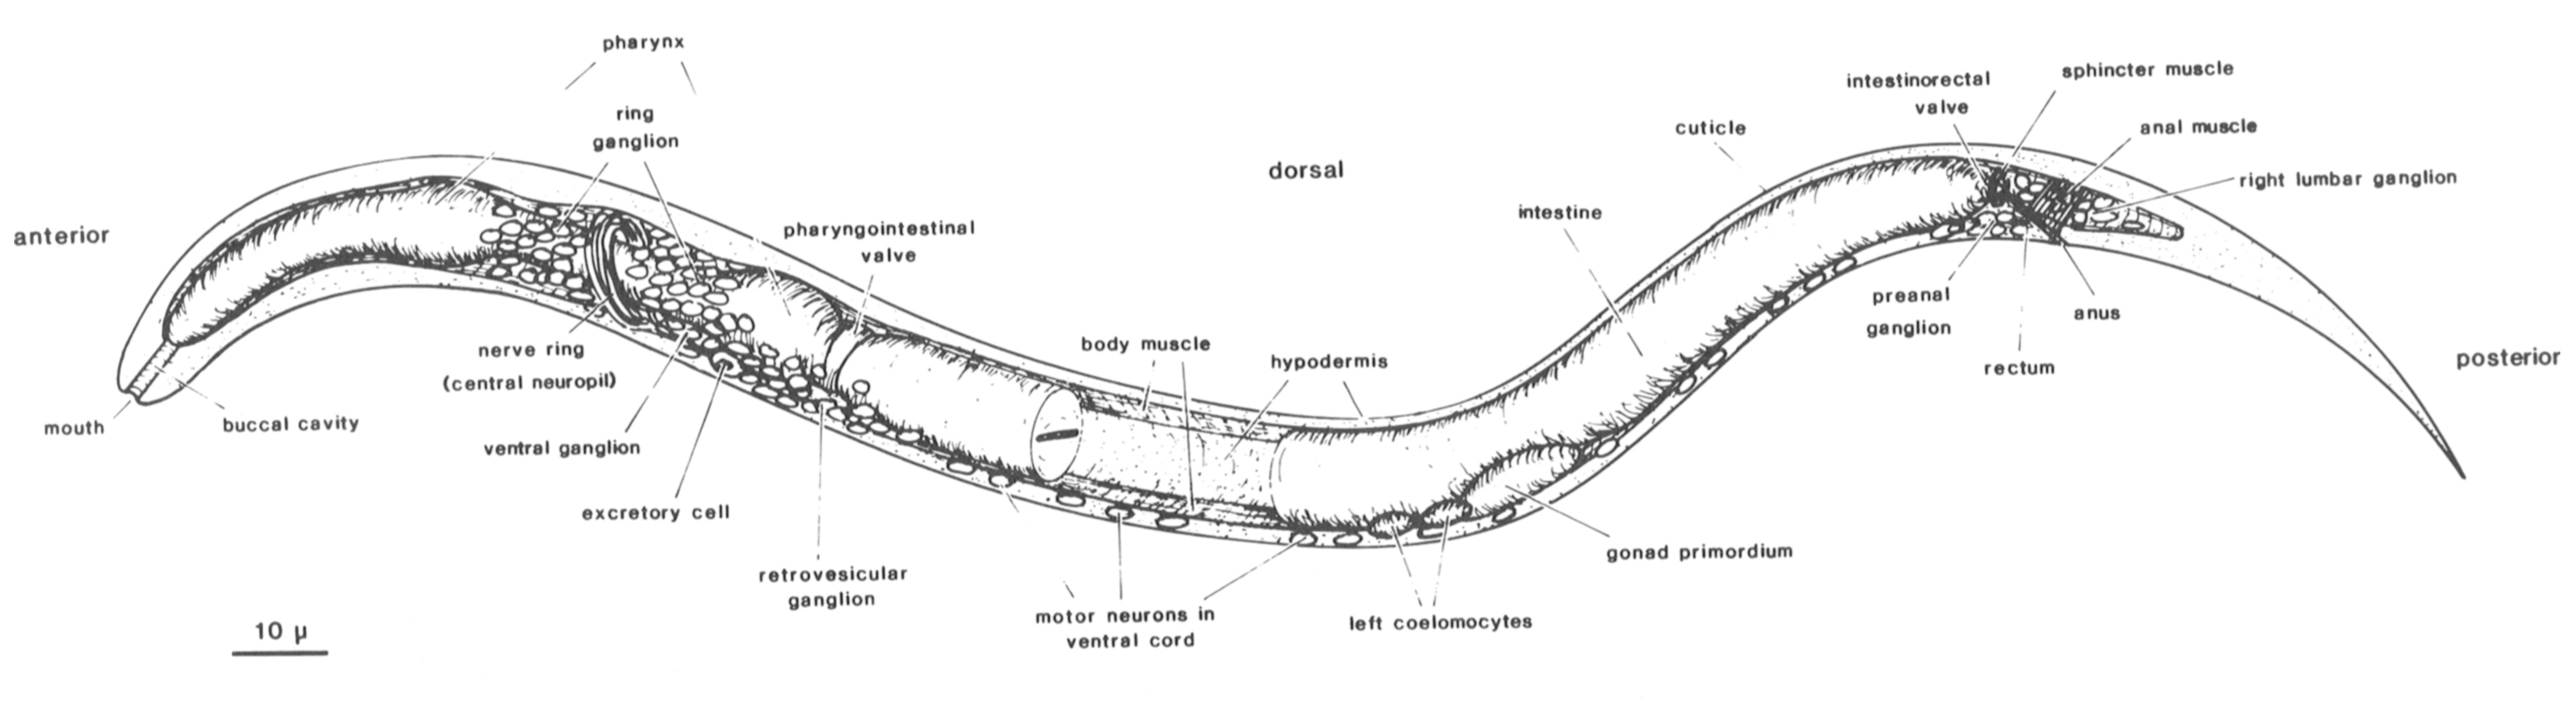 Anatomy of nematodes